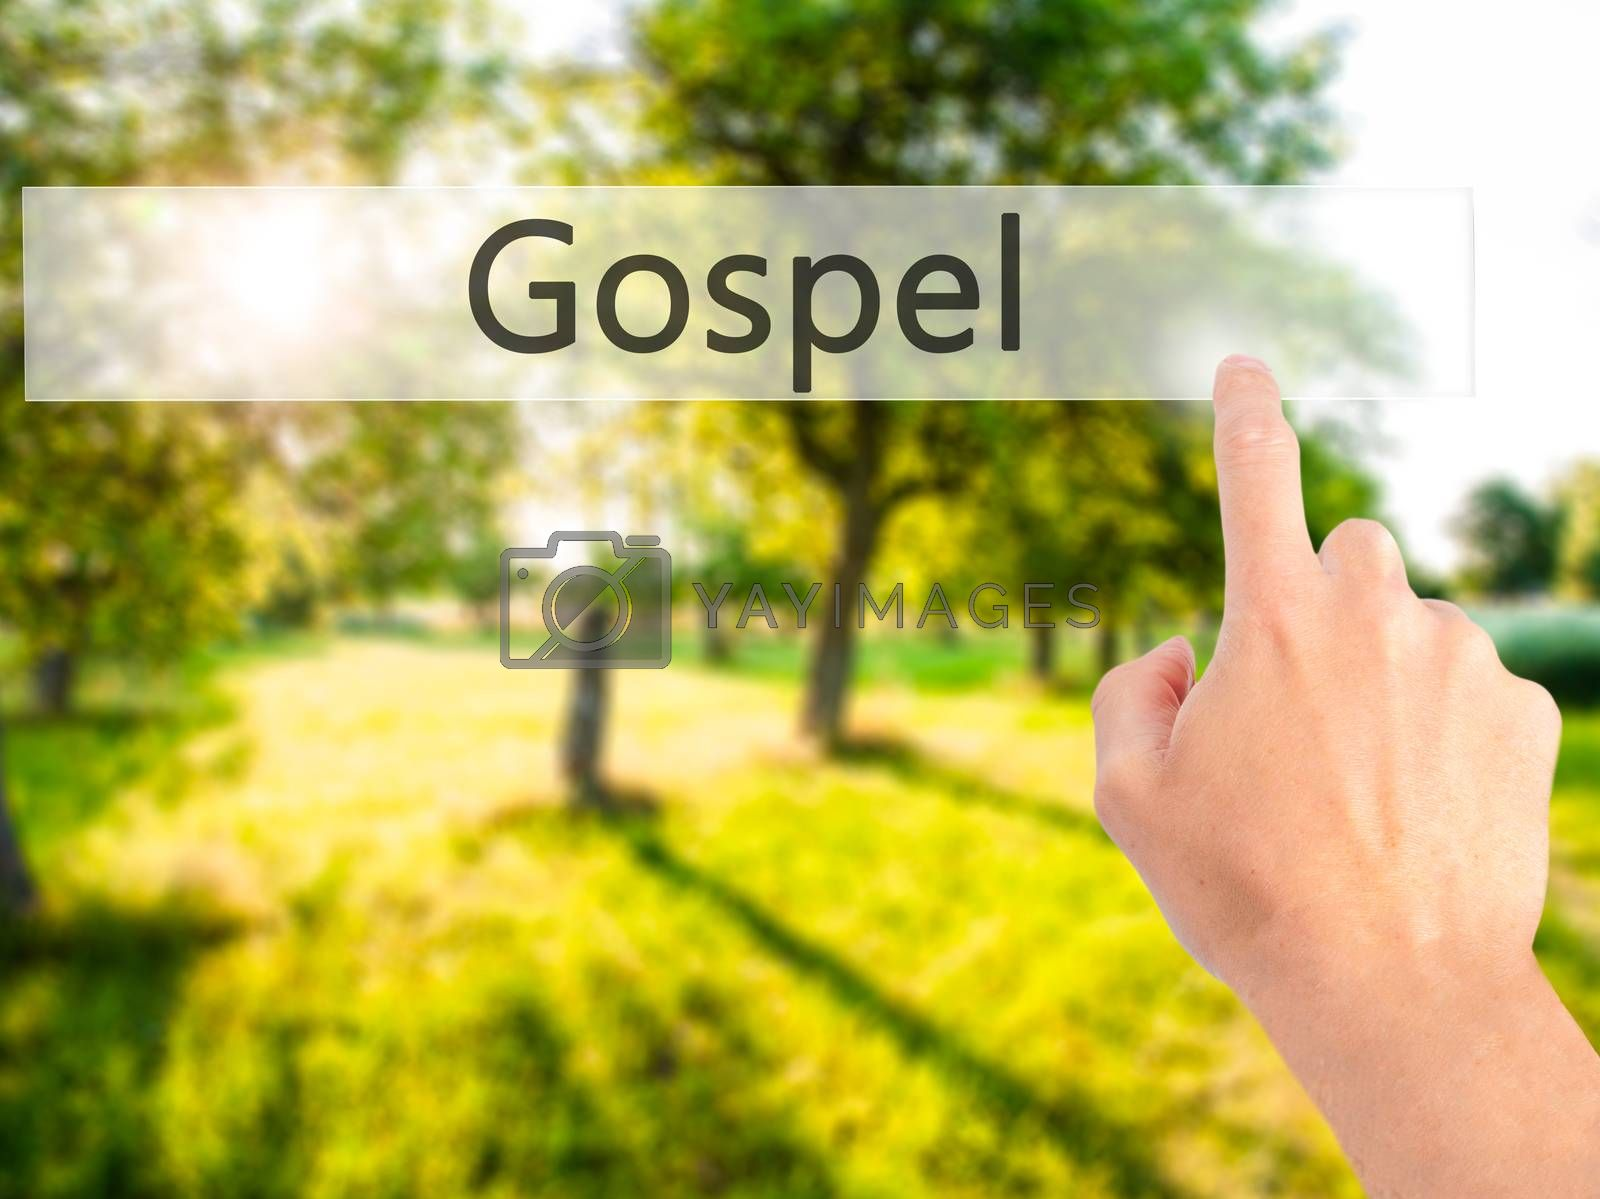 Gospel - Hand pressing a button on blurred background concept on by jackald